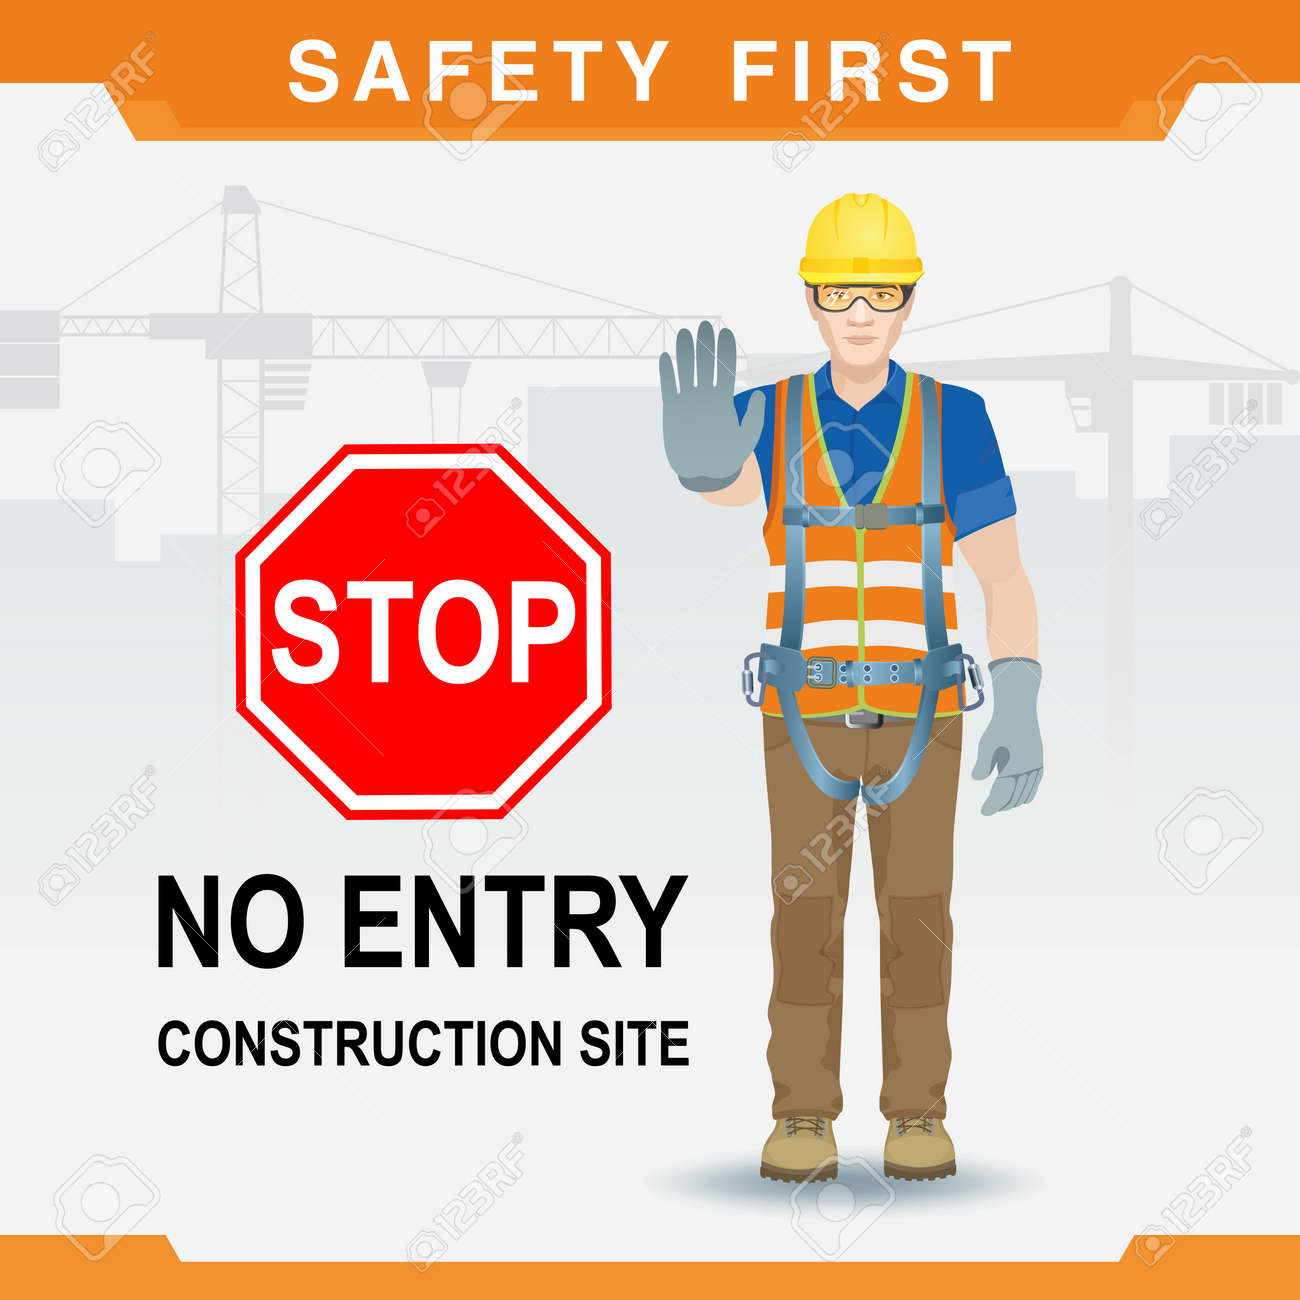 Safety at the construction site  Safety first  No entry with